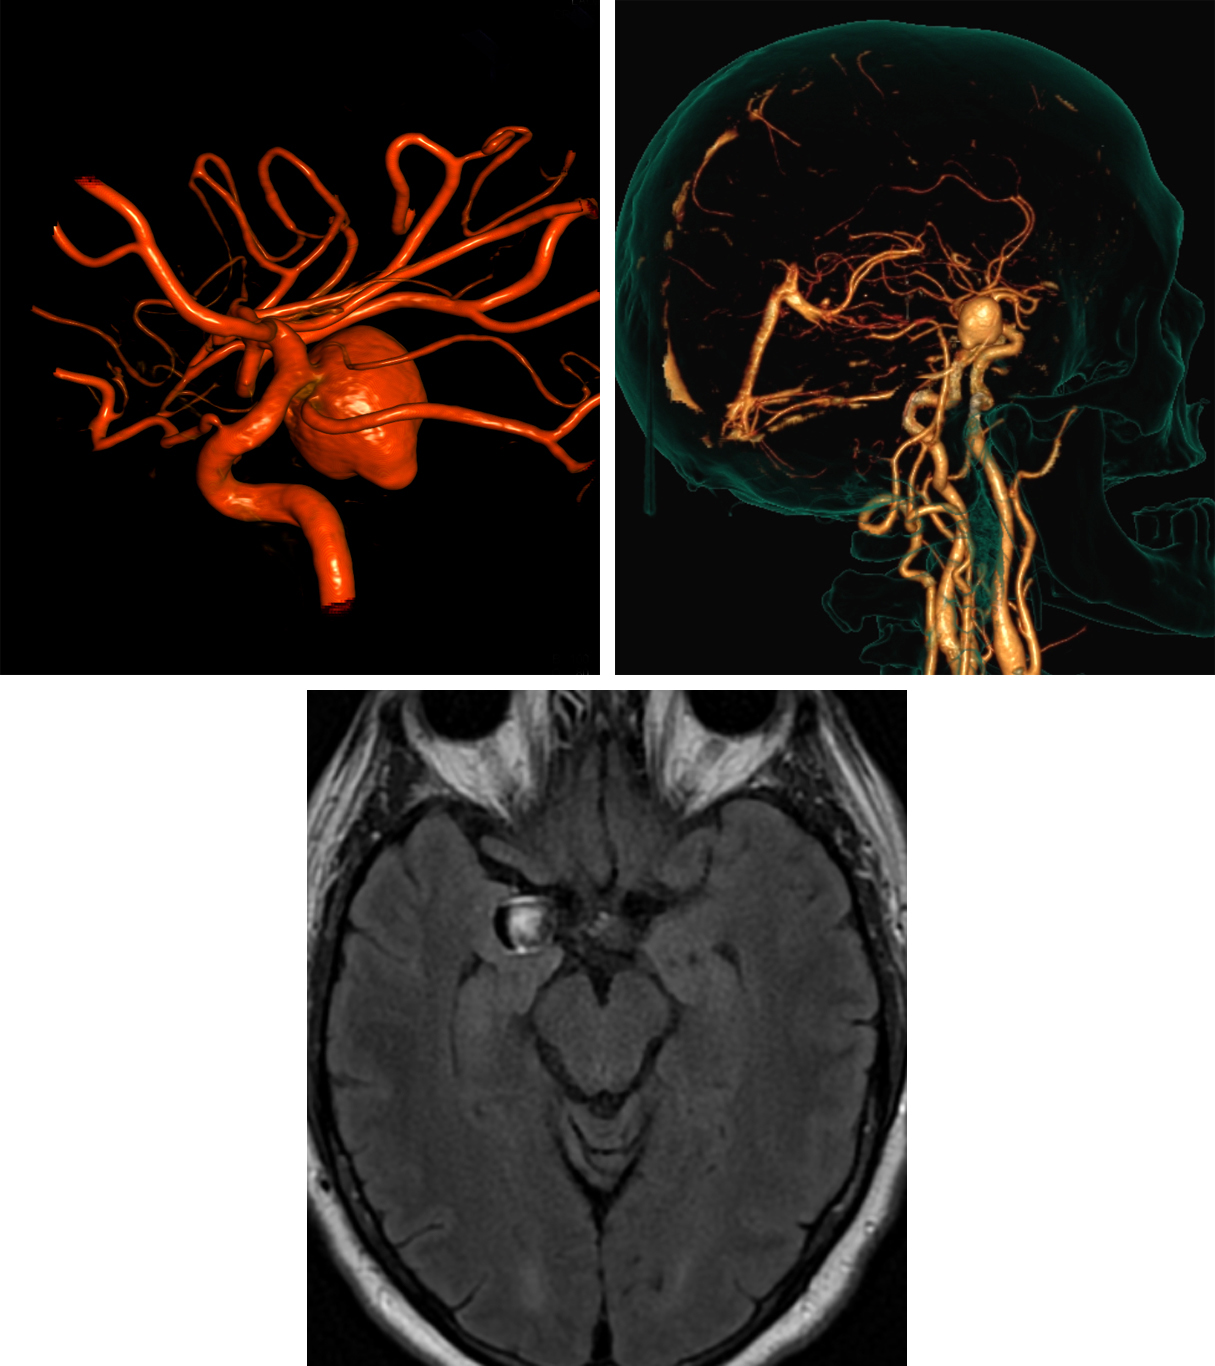 Figure 8: PComA aneurysm. (Top Left) This PComA aneurysm appears pedunculated but is clearly shown to incorporate the proximal (carotid) aspect of the PComA on this 3D reformat from DSA. A small bulbous outpouching from the aneurysm apex portends a higher risk for hemorrhage. (Top Right) CTA images can be reformatted to create images that may be helpful for anatomic localization for the neurosurgeon planning to clip an aneurysm. (Bottom Row) Axial FLAIR MRI demonstrates heterogeneity of this aneurysm due to flow-related signal changes.